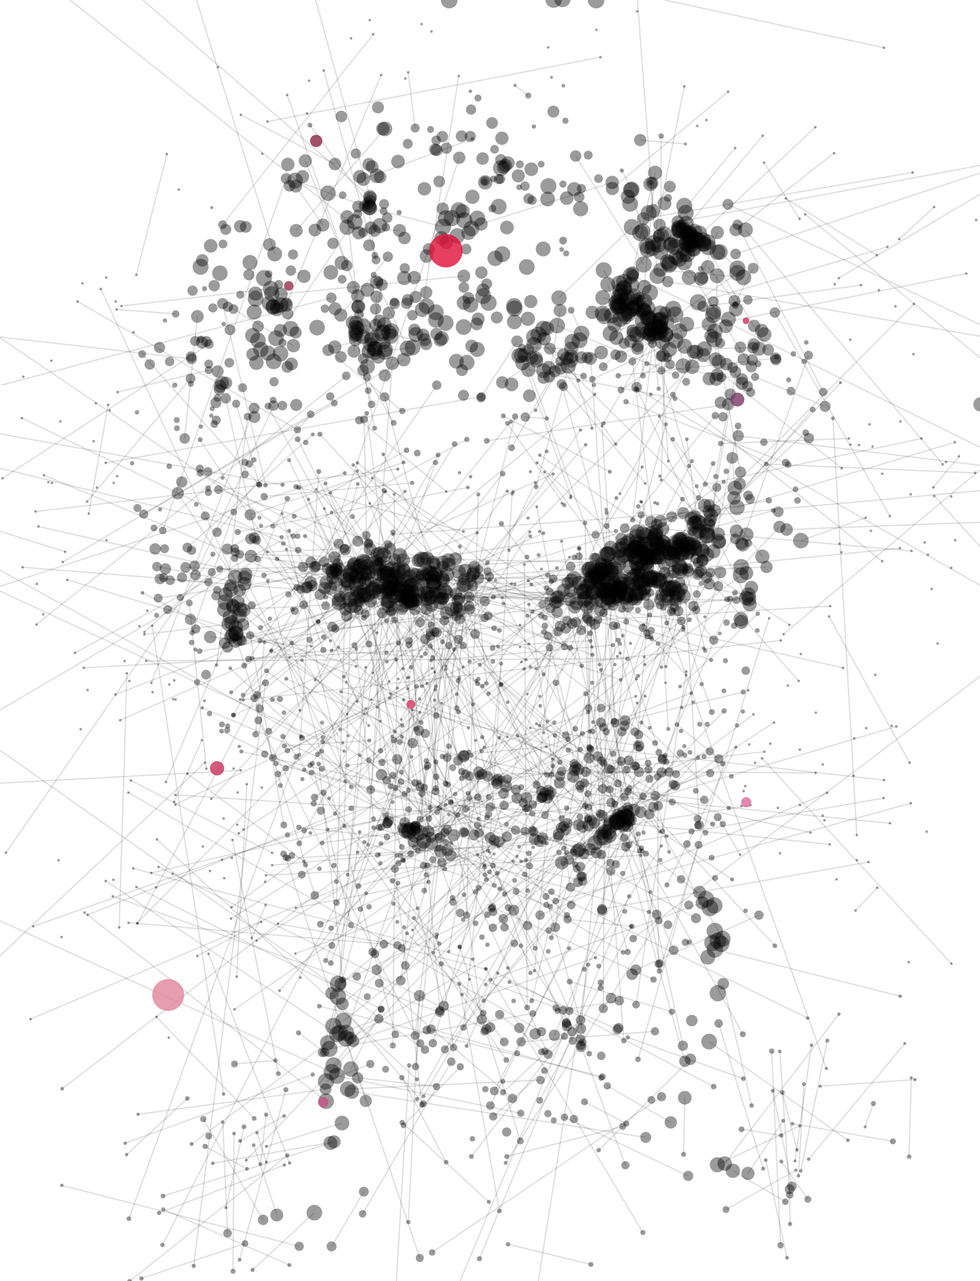 Illustration of Yoshua Bengio made of dots and lines.